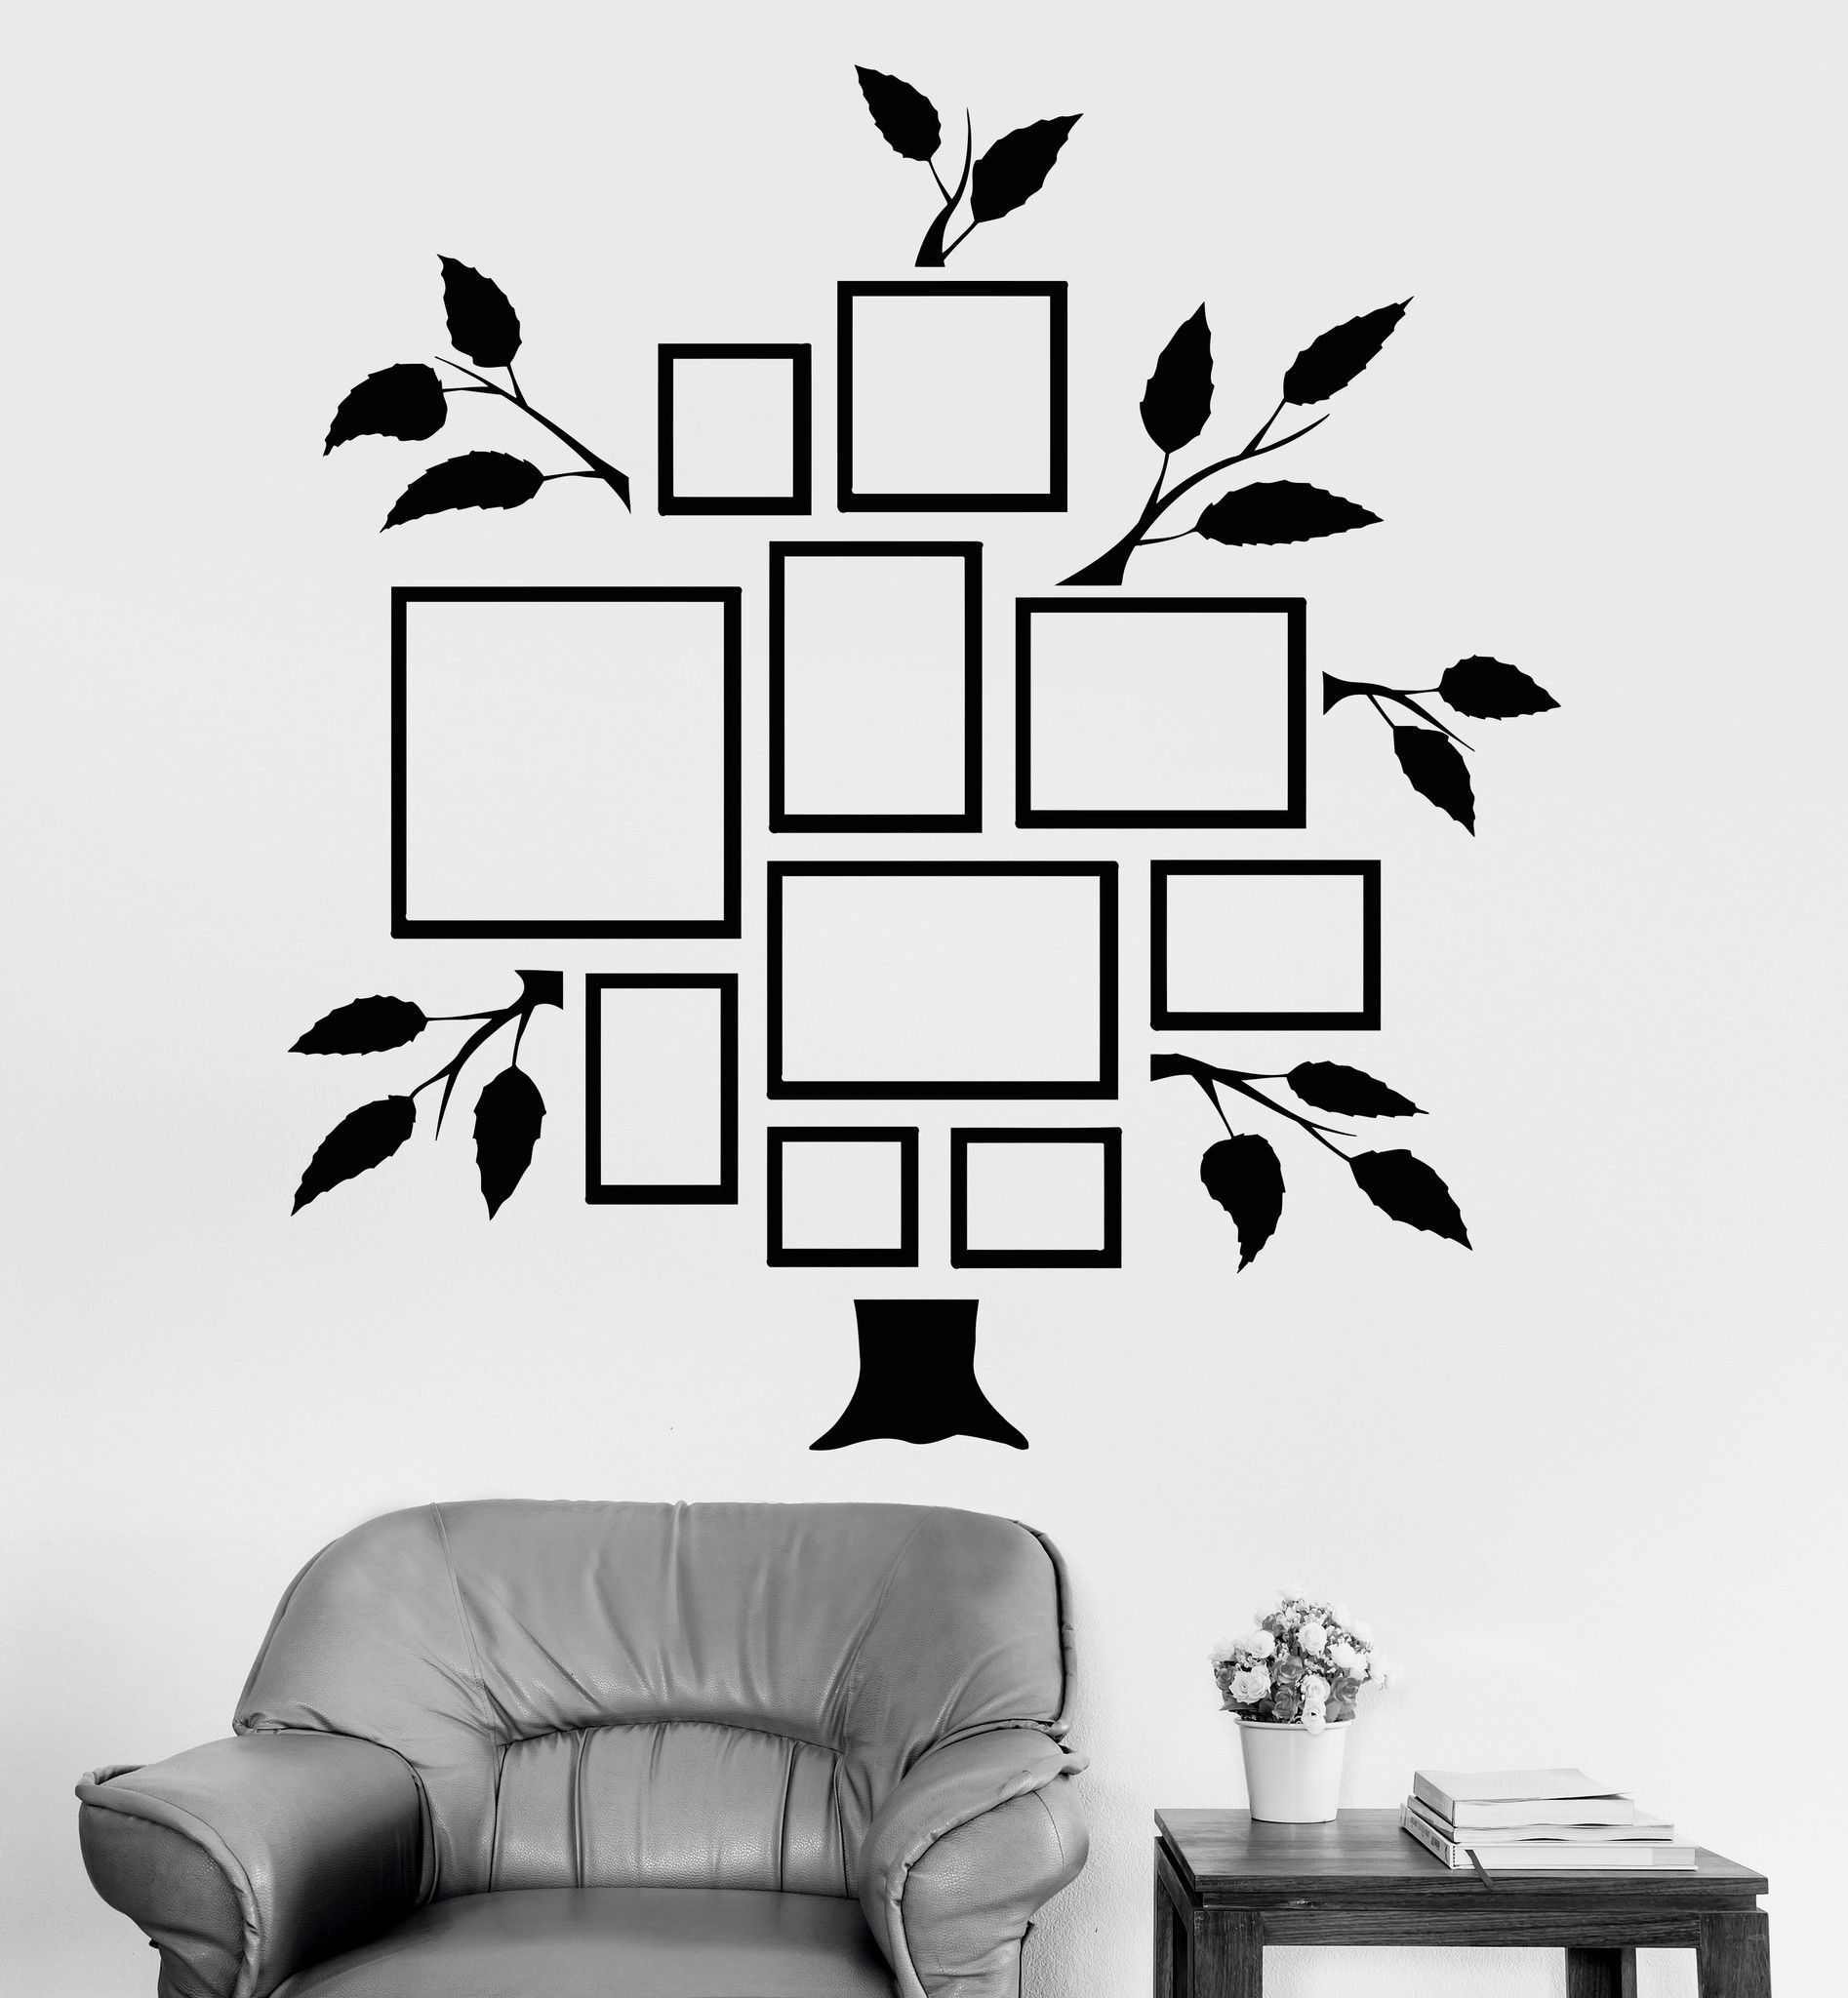 Vinyl Wall Decal Family Tree Frames For Photos Design for